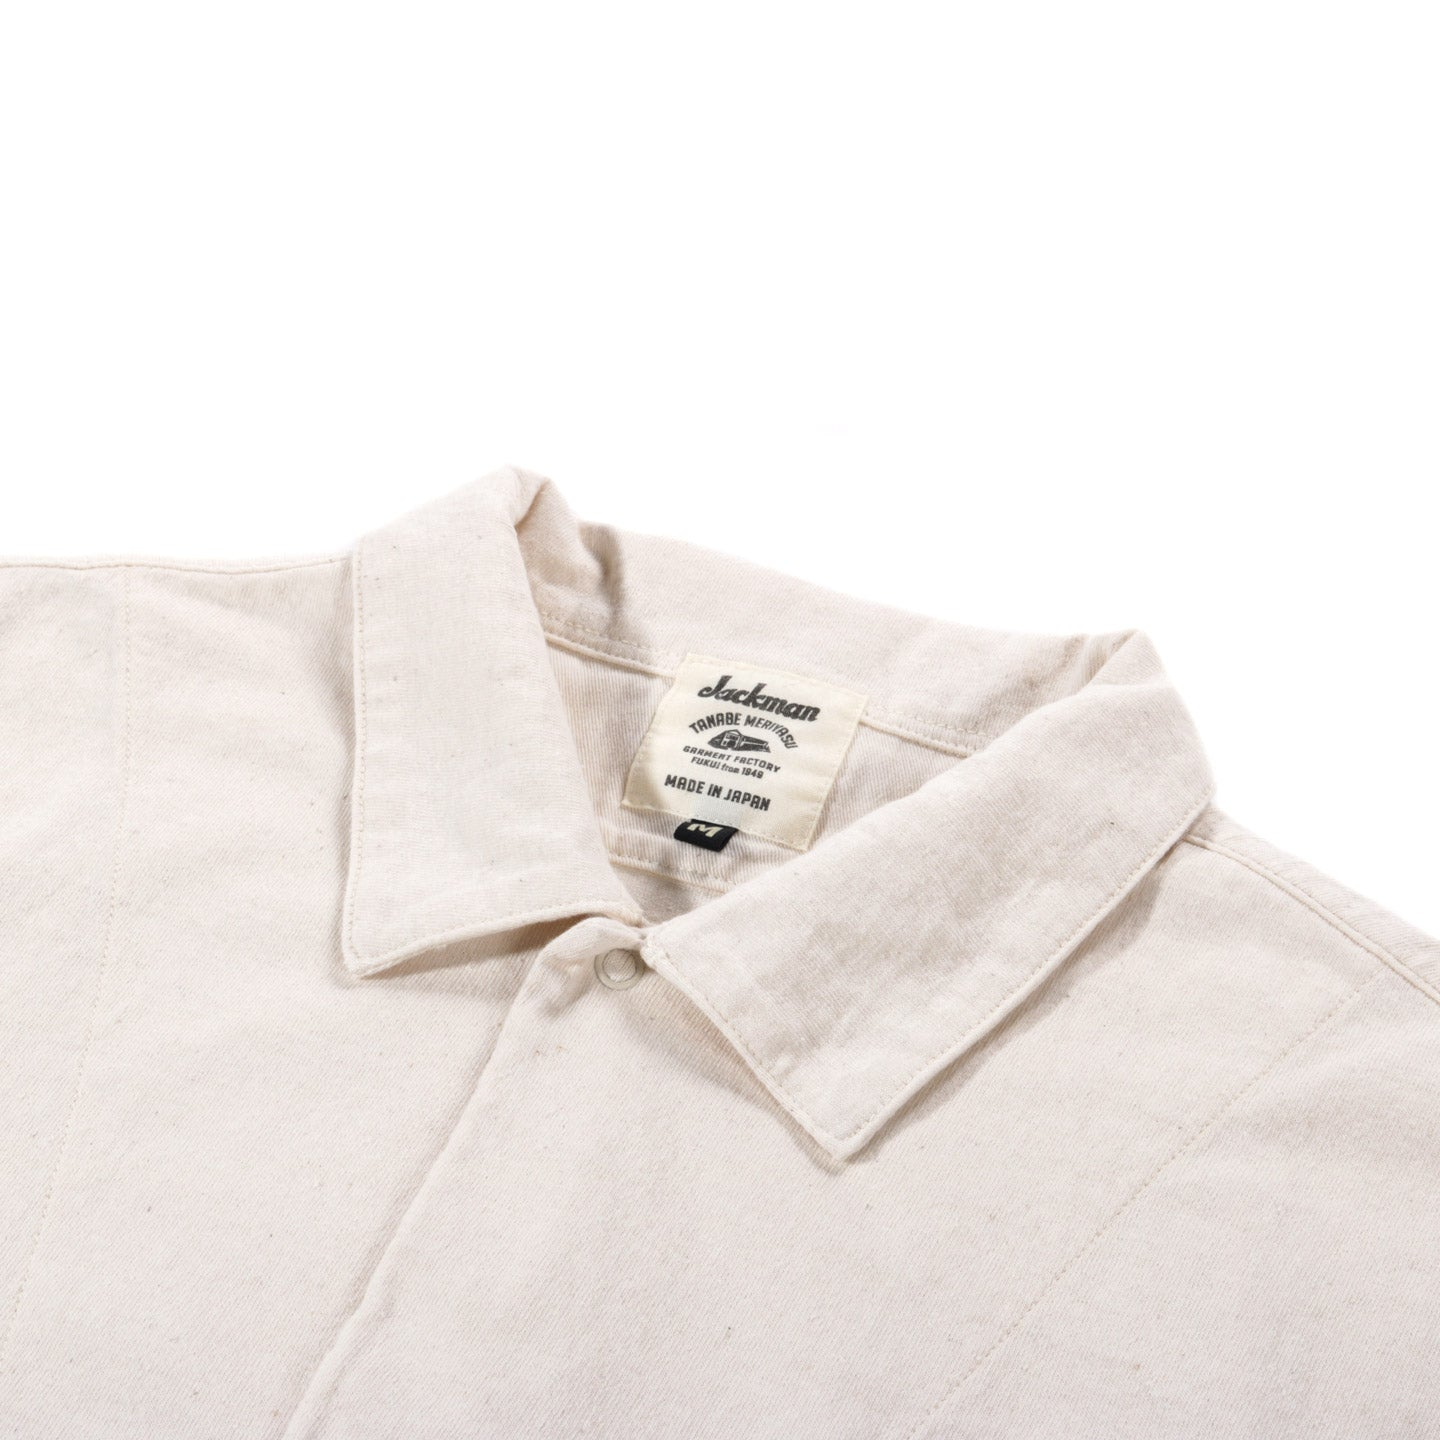 JACKMAN GG SWEAT PARKA NAVY